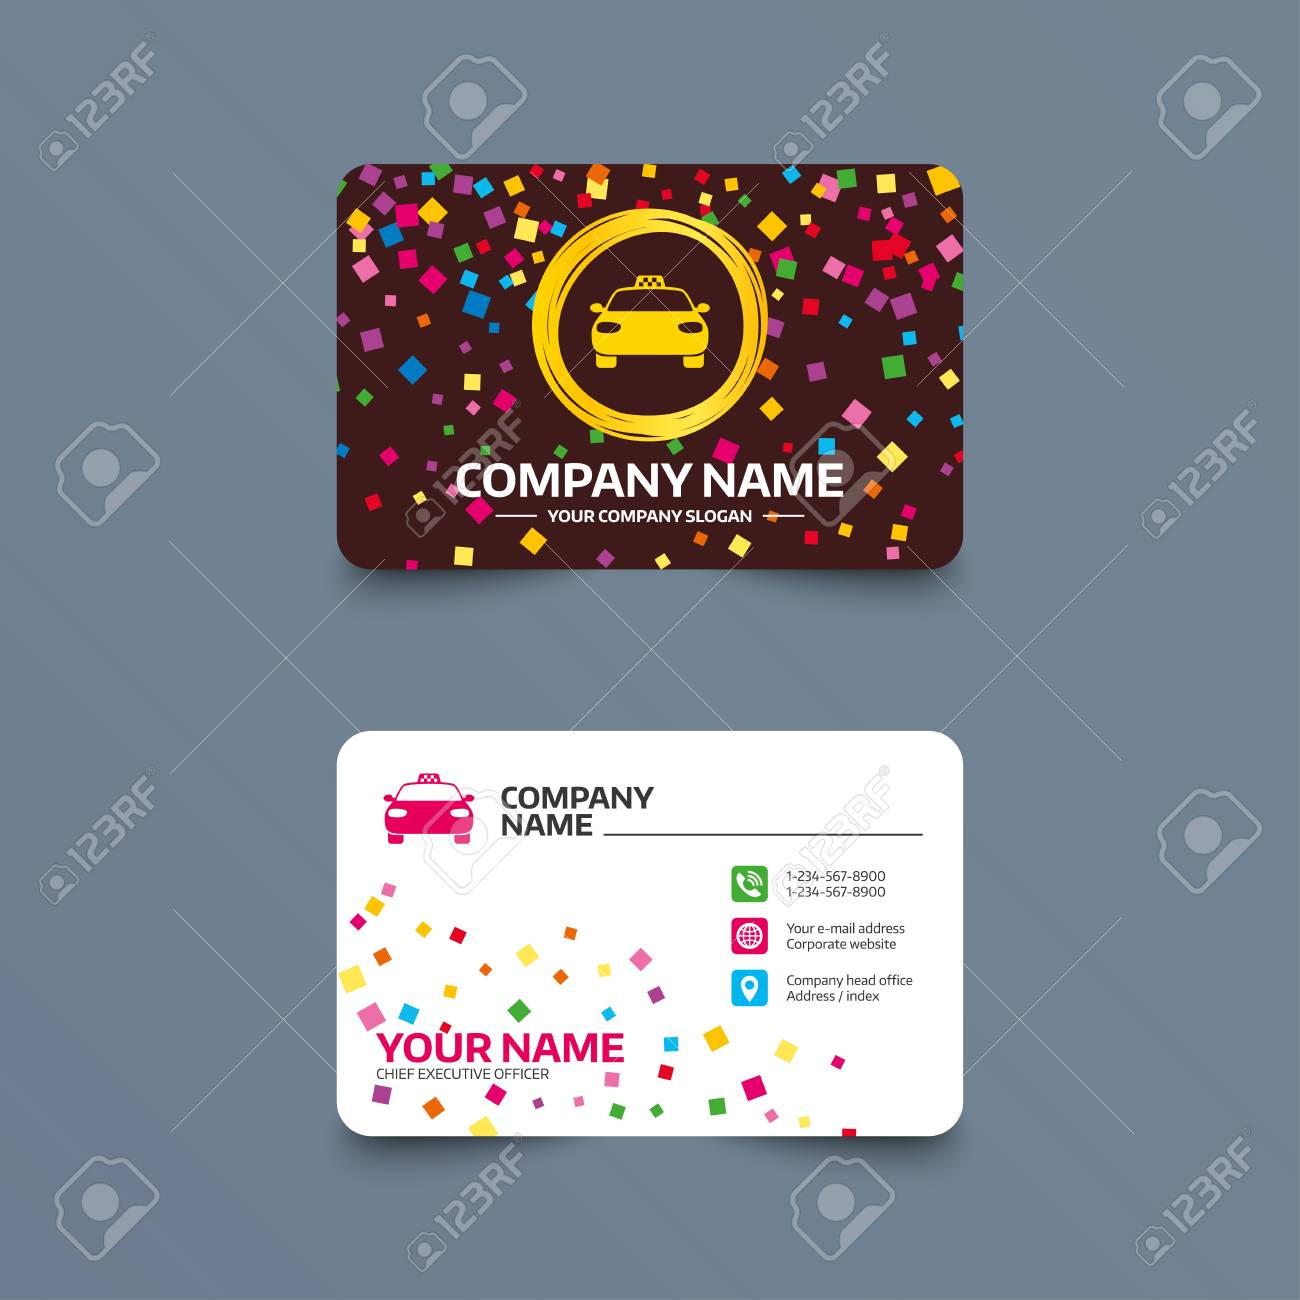 Business card template with confetti pieces taxi car sign icon business card template with confetti pieces taxi car sign icon public transport symbol accmission Choice Image